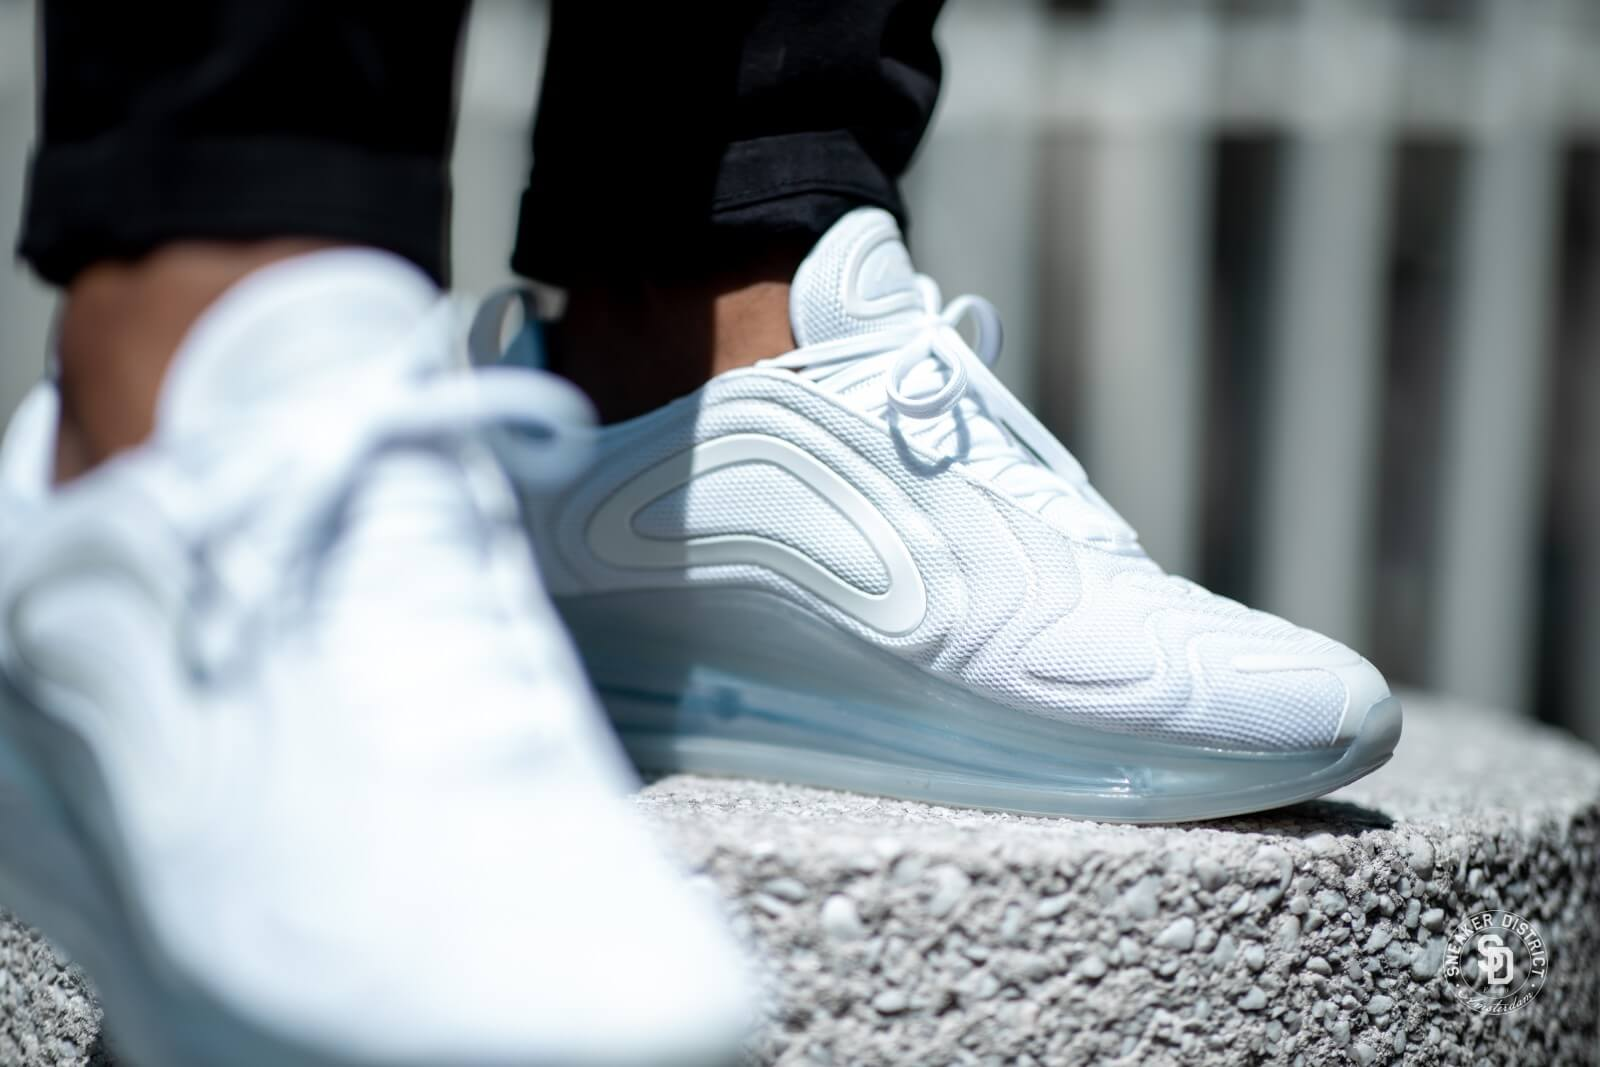 Nike Air Max 720 White/Metallic Platinum - AO2924-100